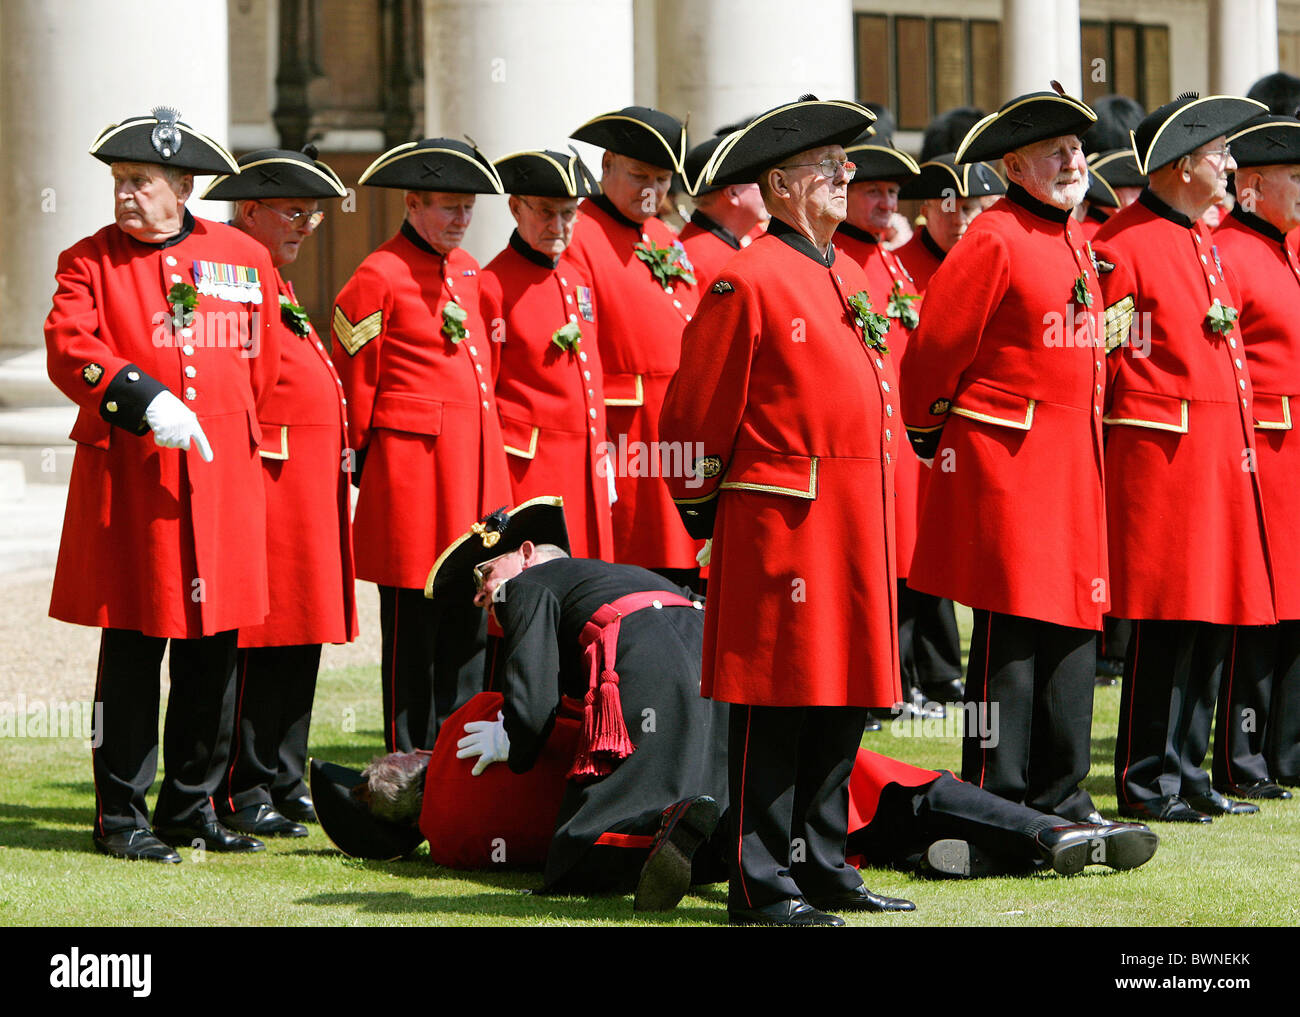 Chelsea Pensioner faints in the heat during the annual Founder's Day Parade at the Royal Hospital in Chelsea - Stock Image